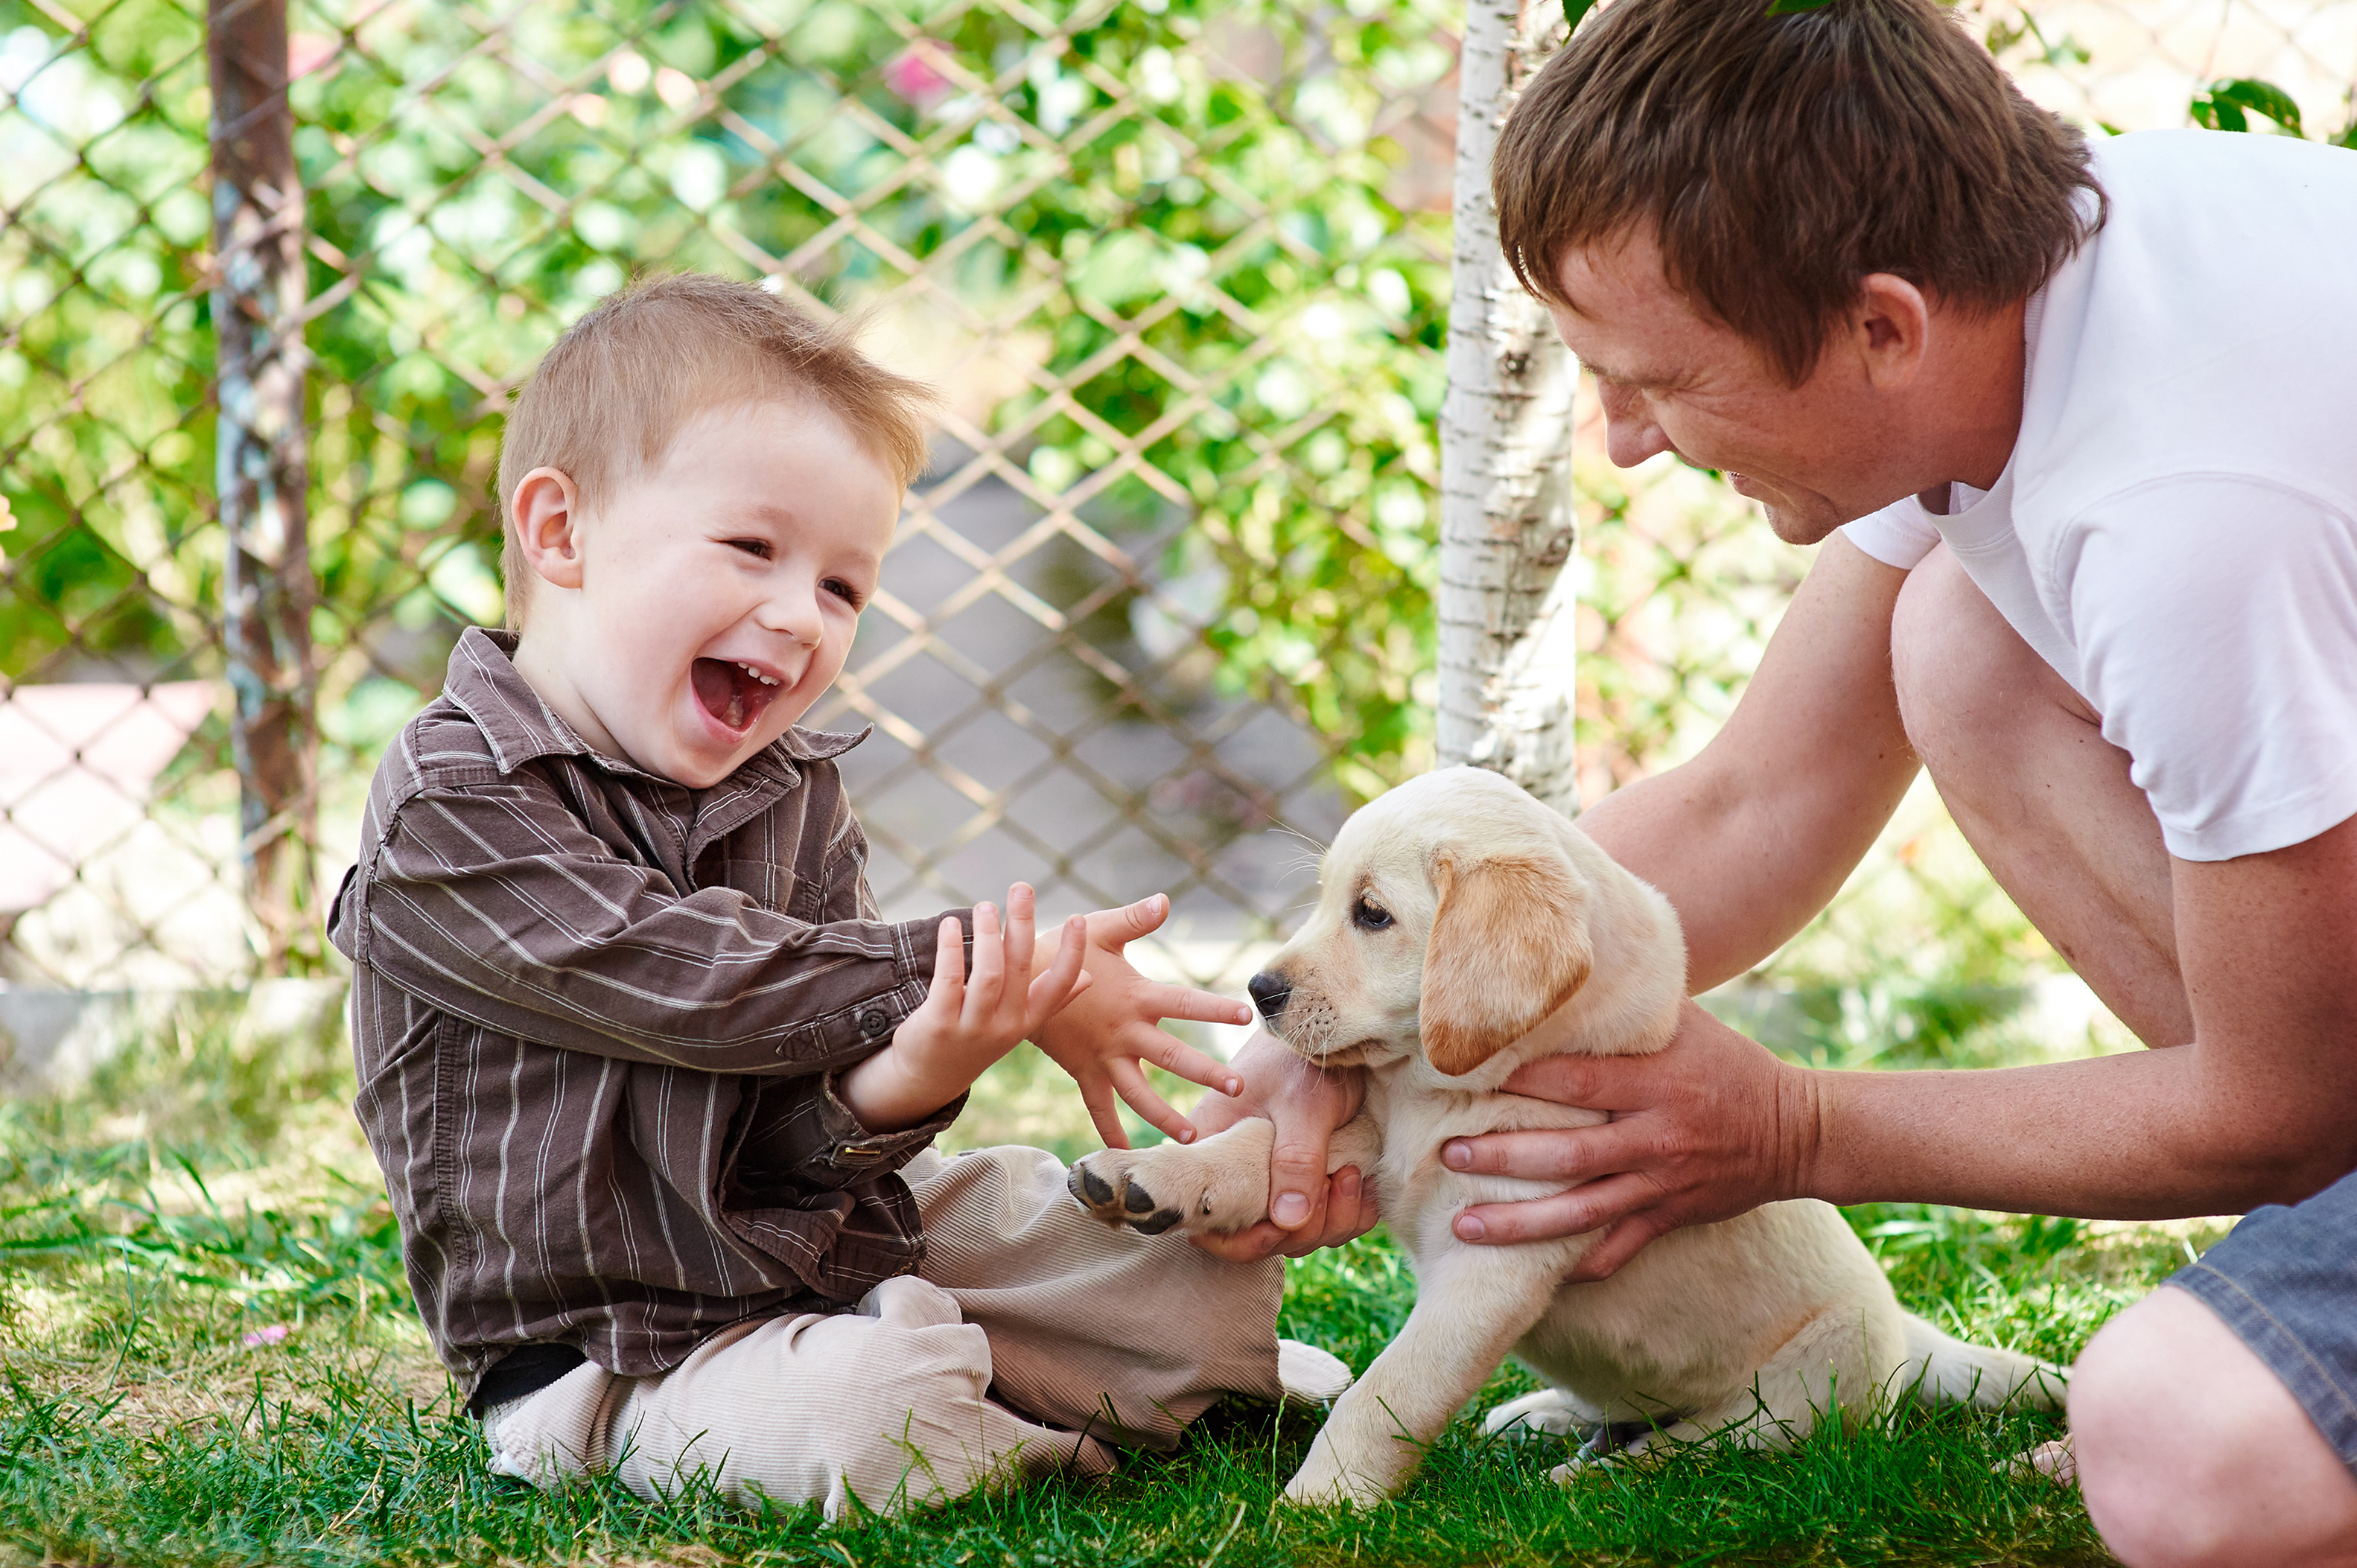 6 Tips to Help a Child that is Afraid of Dogs